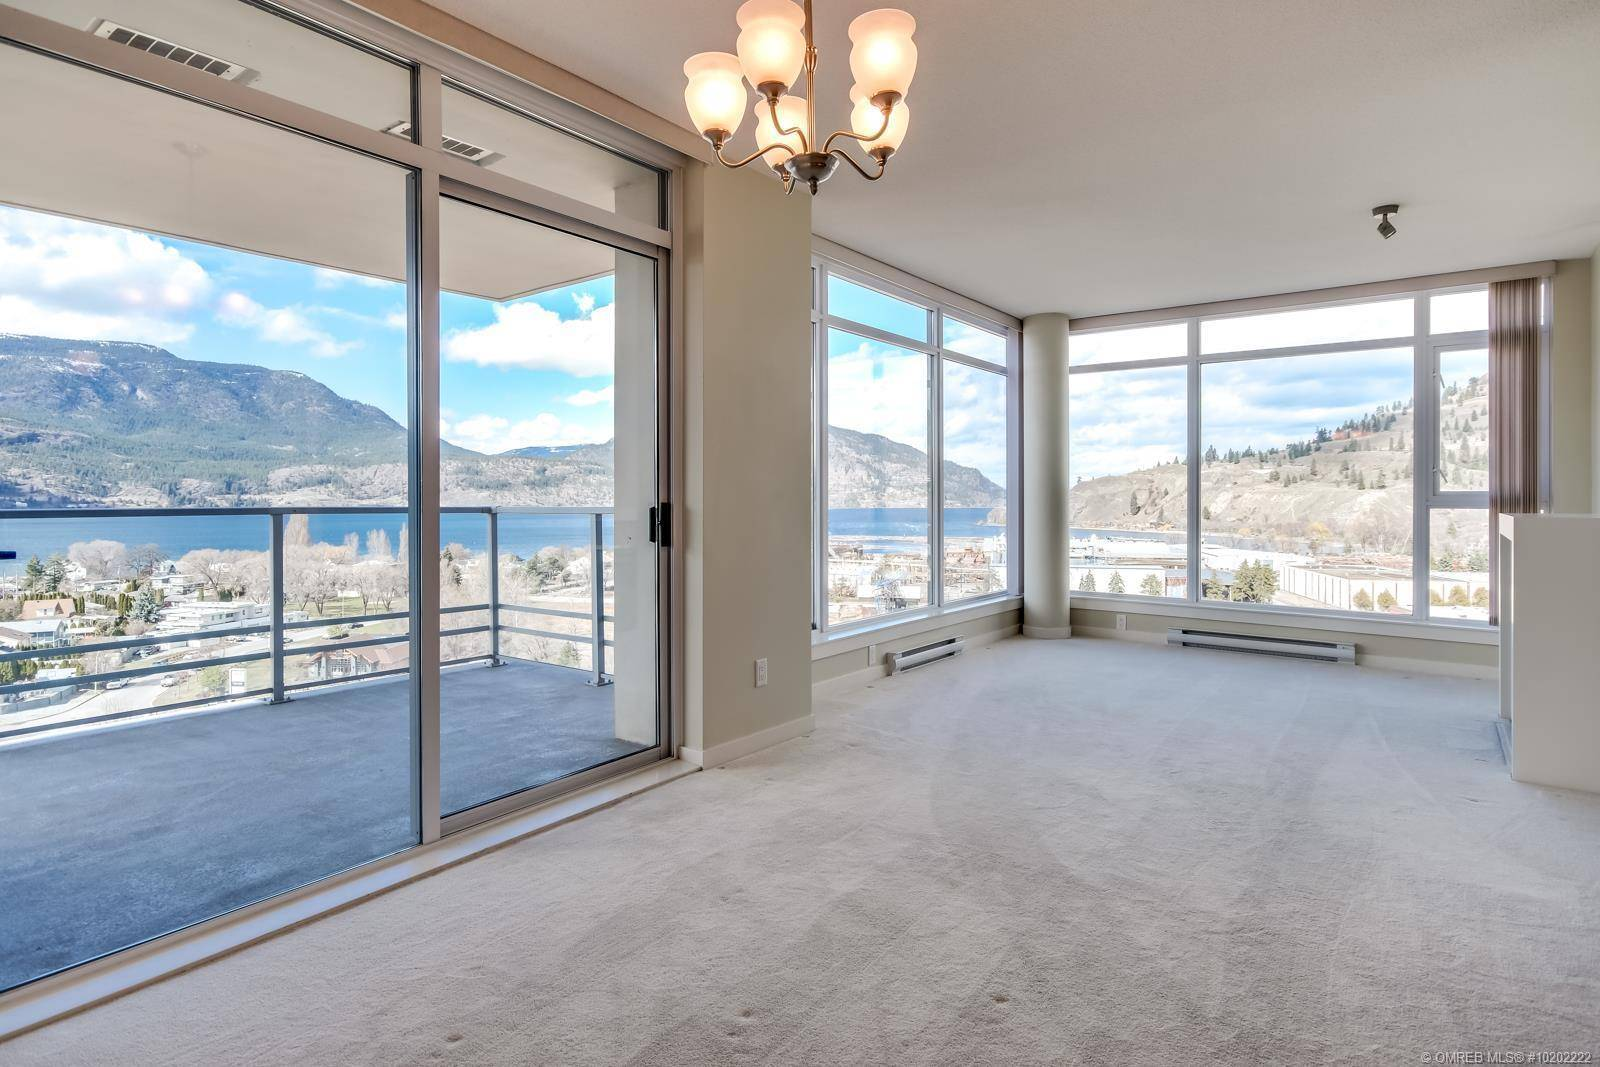 Condo for sale at 1075 Sunset Dr Unit 1401 Kelowna British Columbia - MLS: 10202222